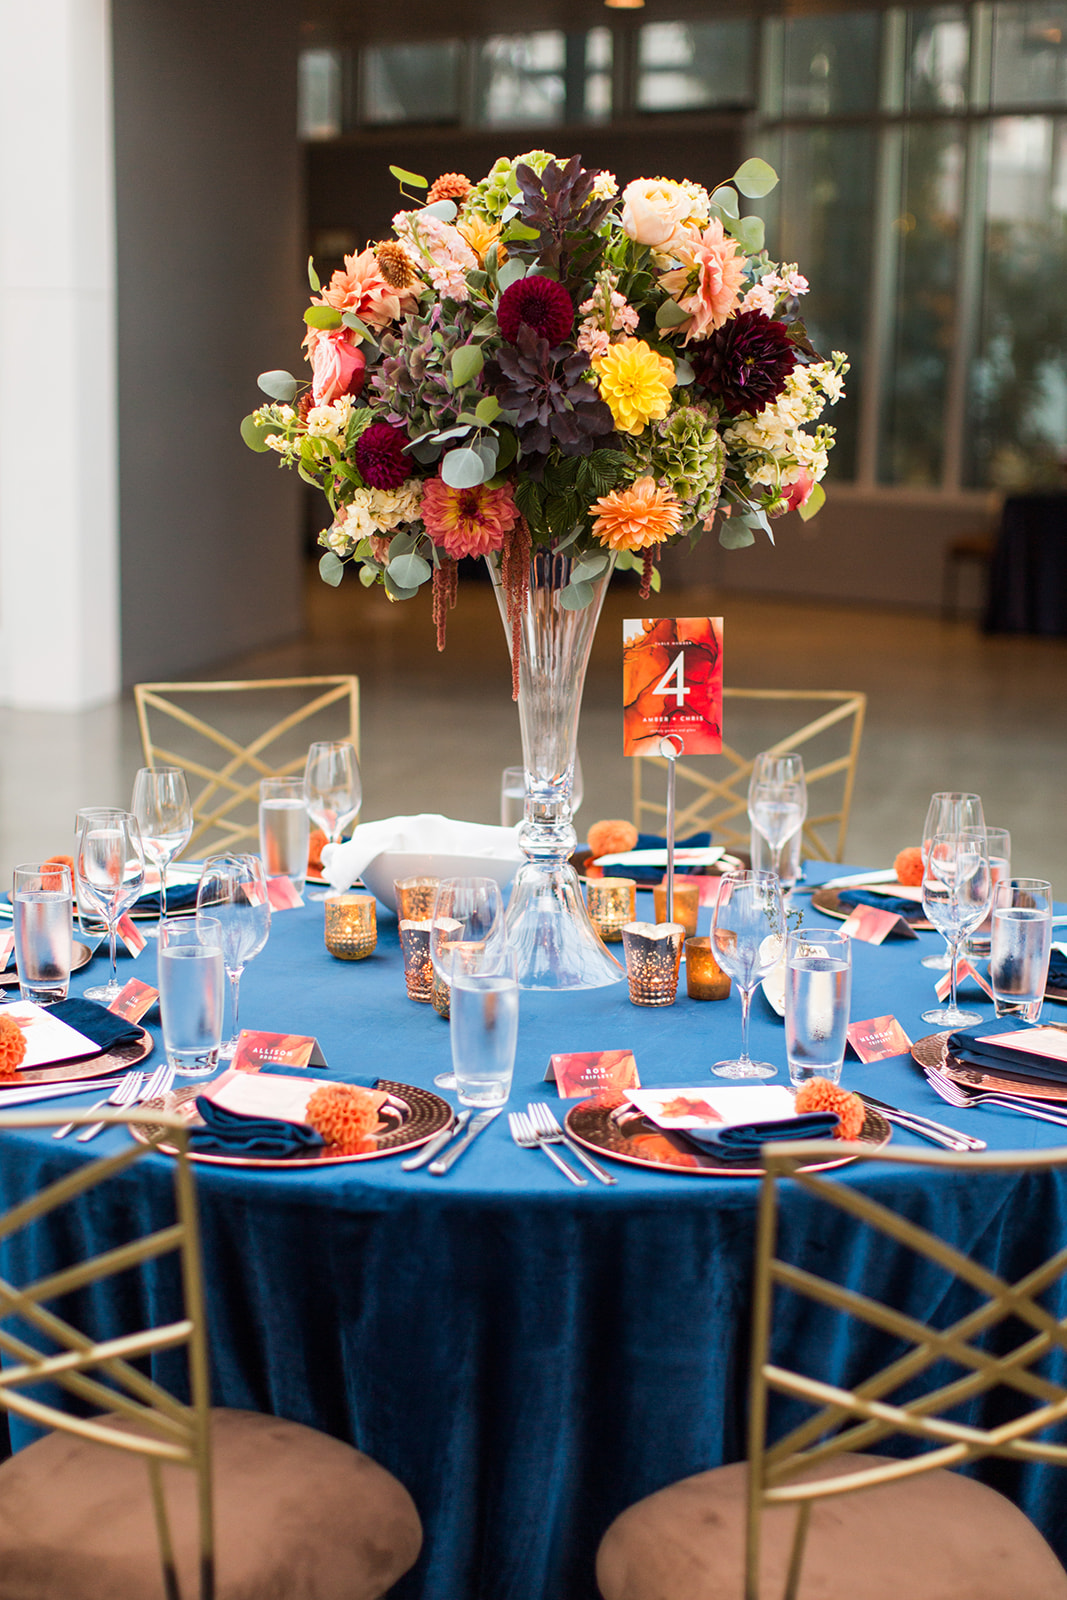 Fall wedding reception in Chihuly glasshouse with navy velvet linens and tall peach and orange centerpieces designed by Flora Nova Design Seattle